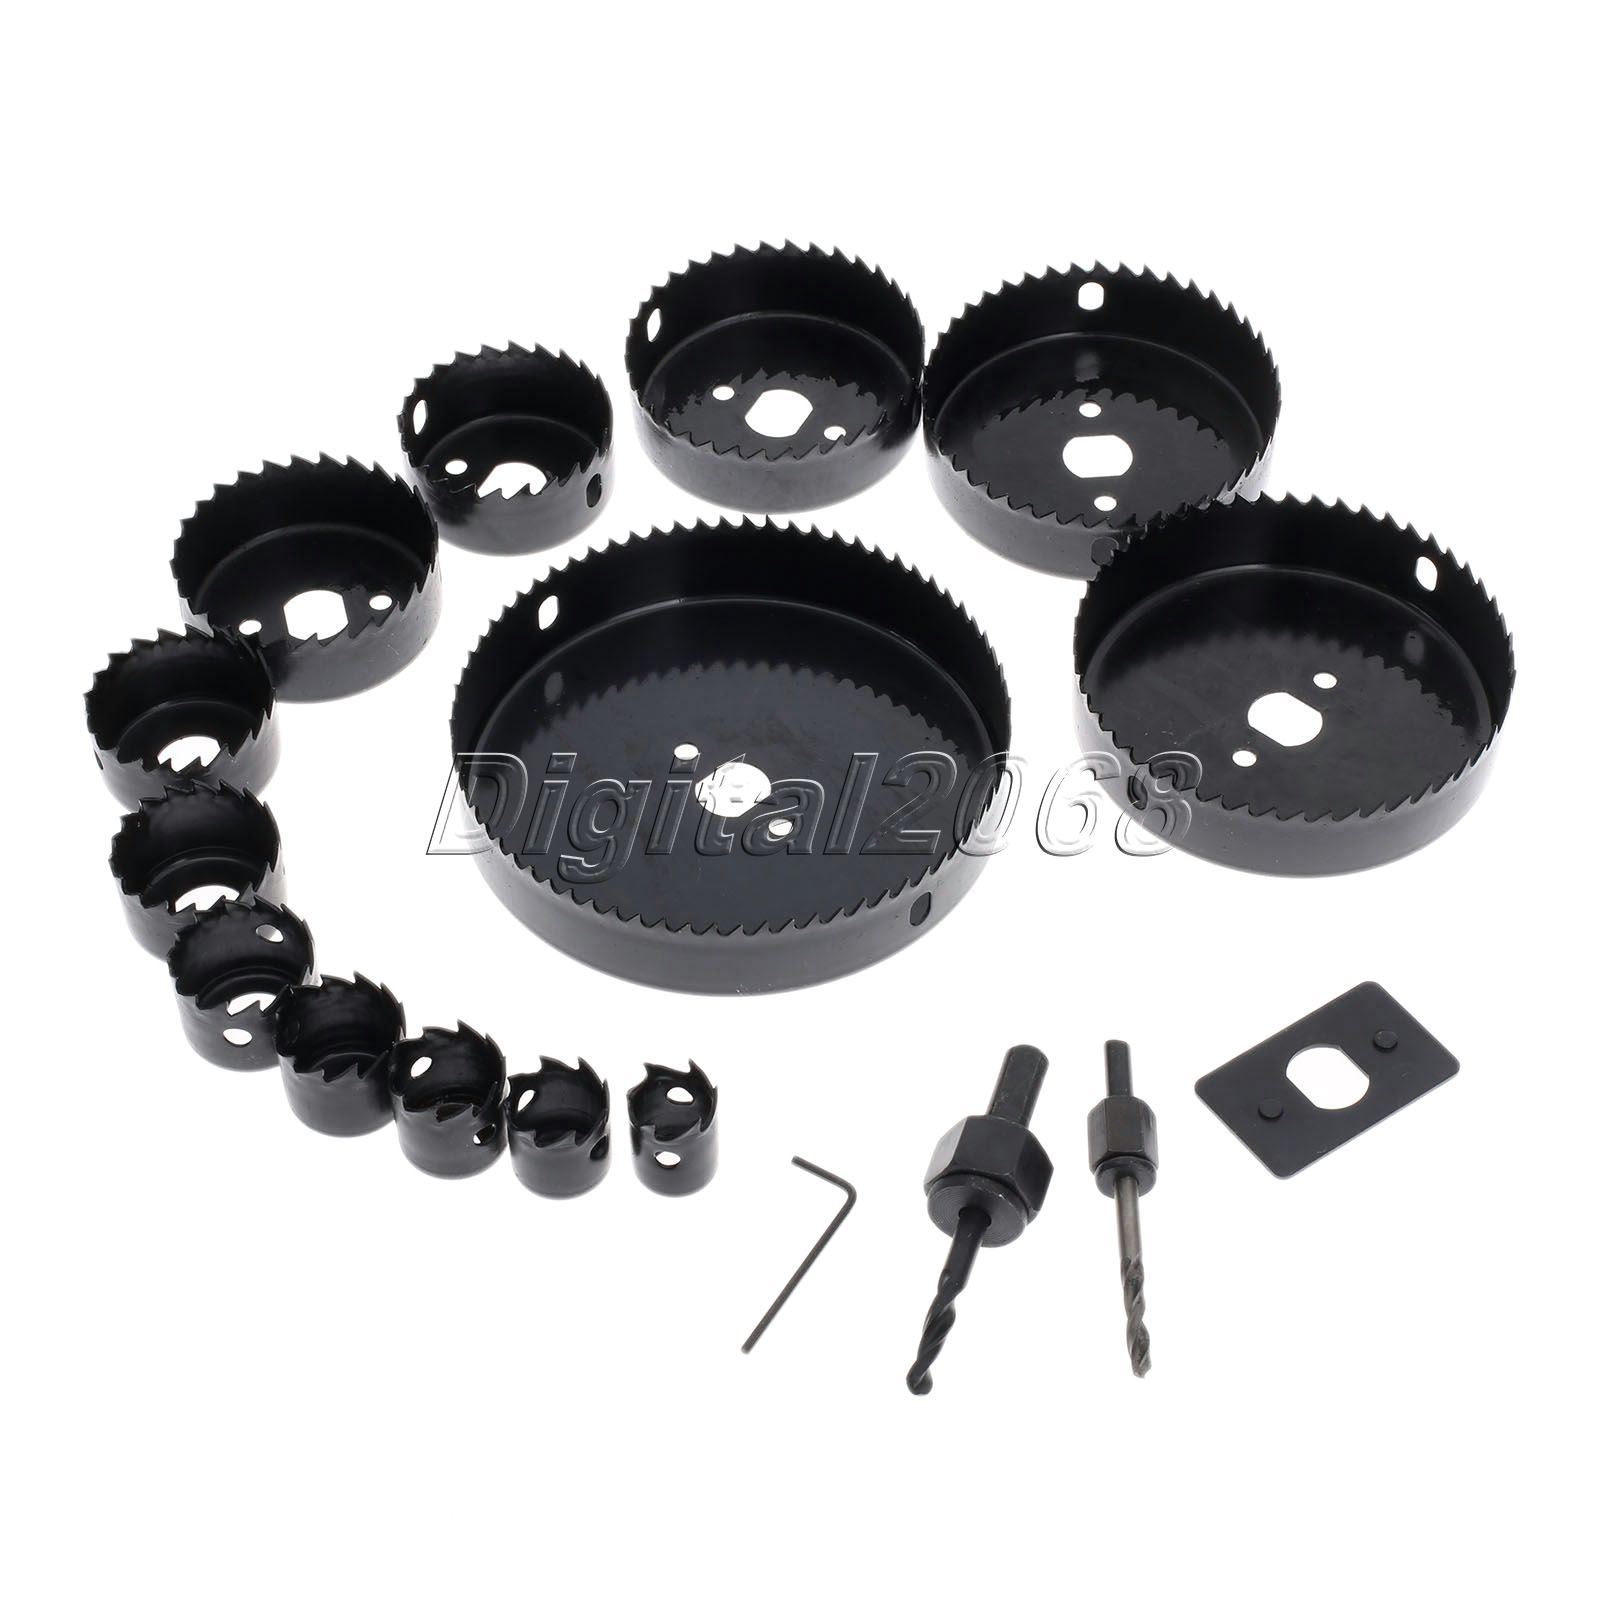 13pcs Hole Saw Bit Cutting Set Kit Tool 2 Mandrils Plastic Circular Round Case Drill Bits Wood Thin Metal Cutter Hole Saw Tools new 50mm wall hole saw drill bit set 200mm connecting rod with wrench mayitr for concrete cement stone